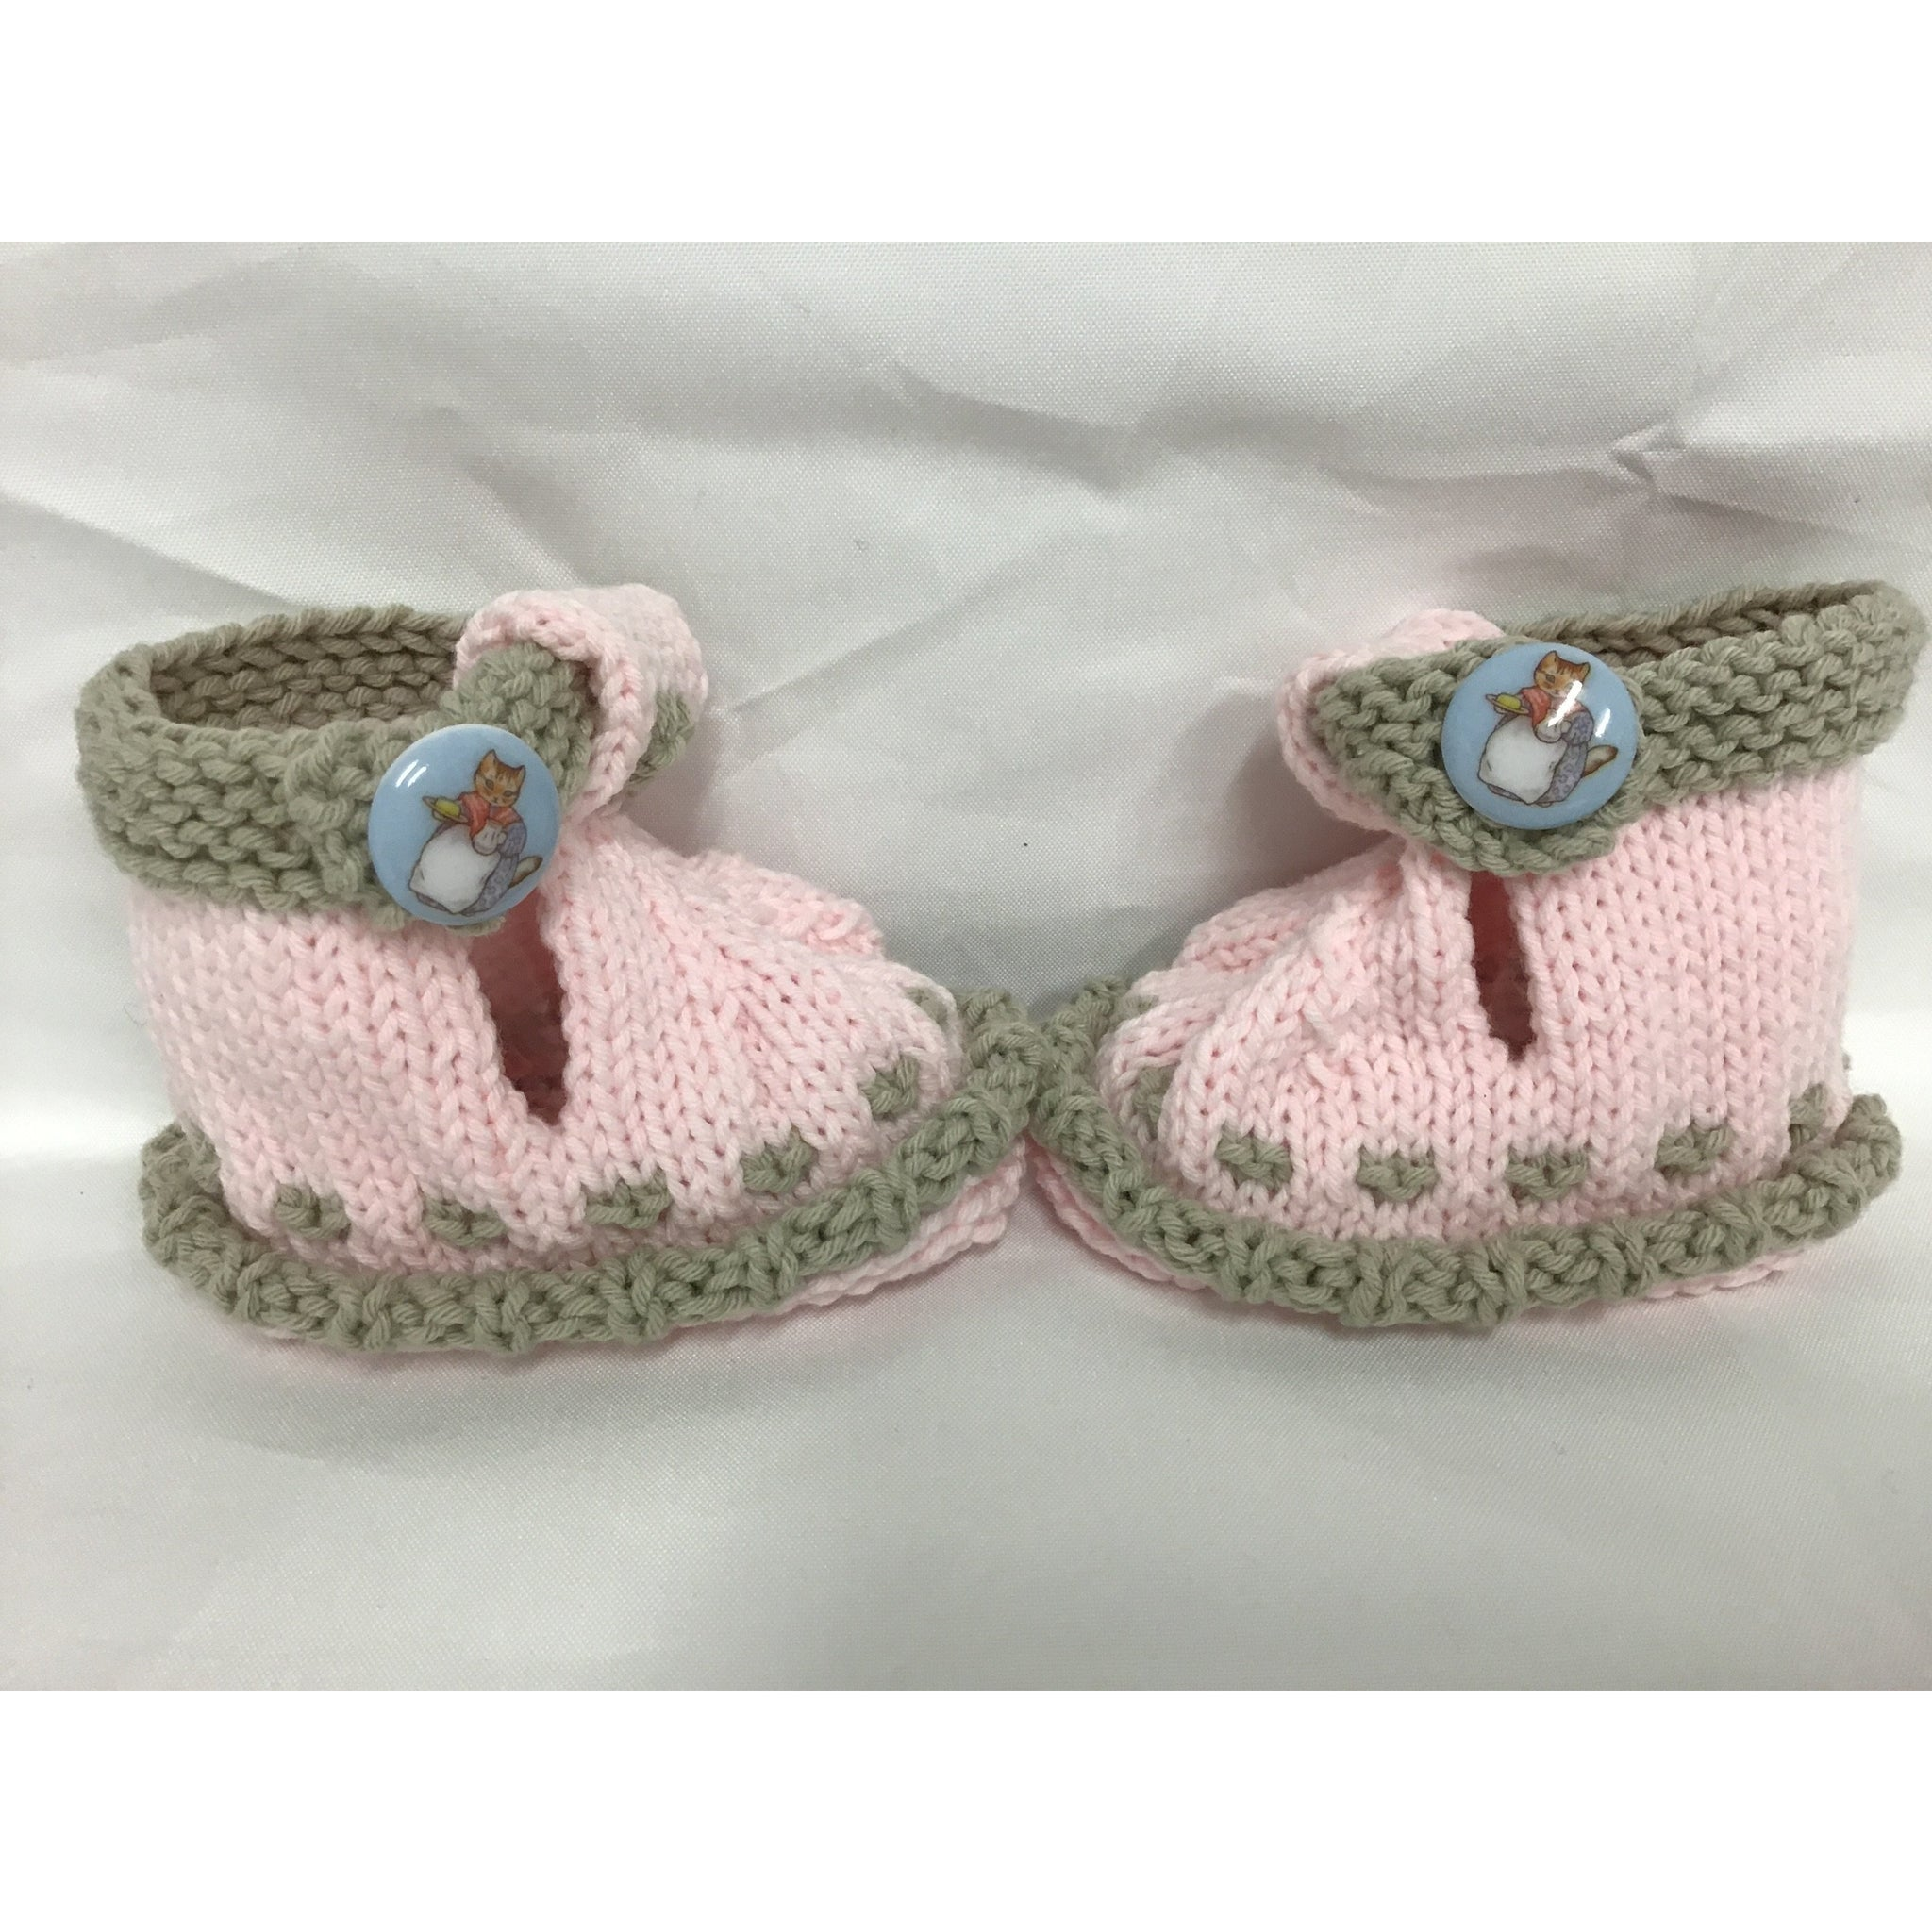 Peter rabbit button boots for your little one